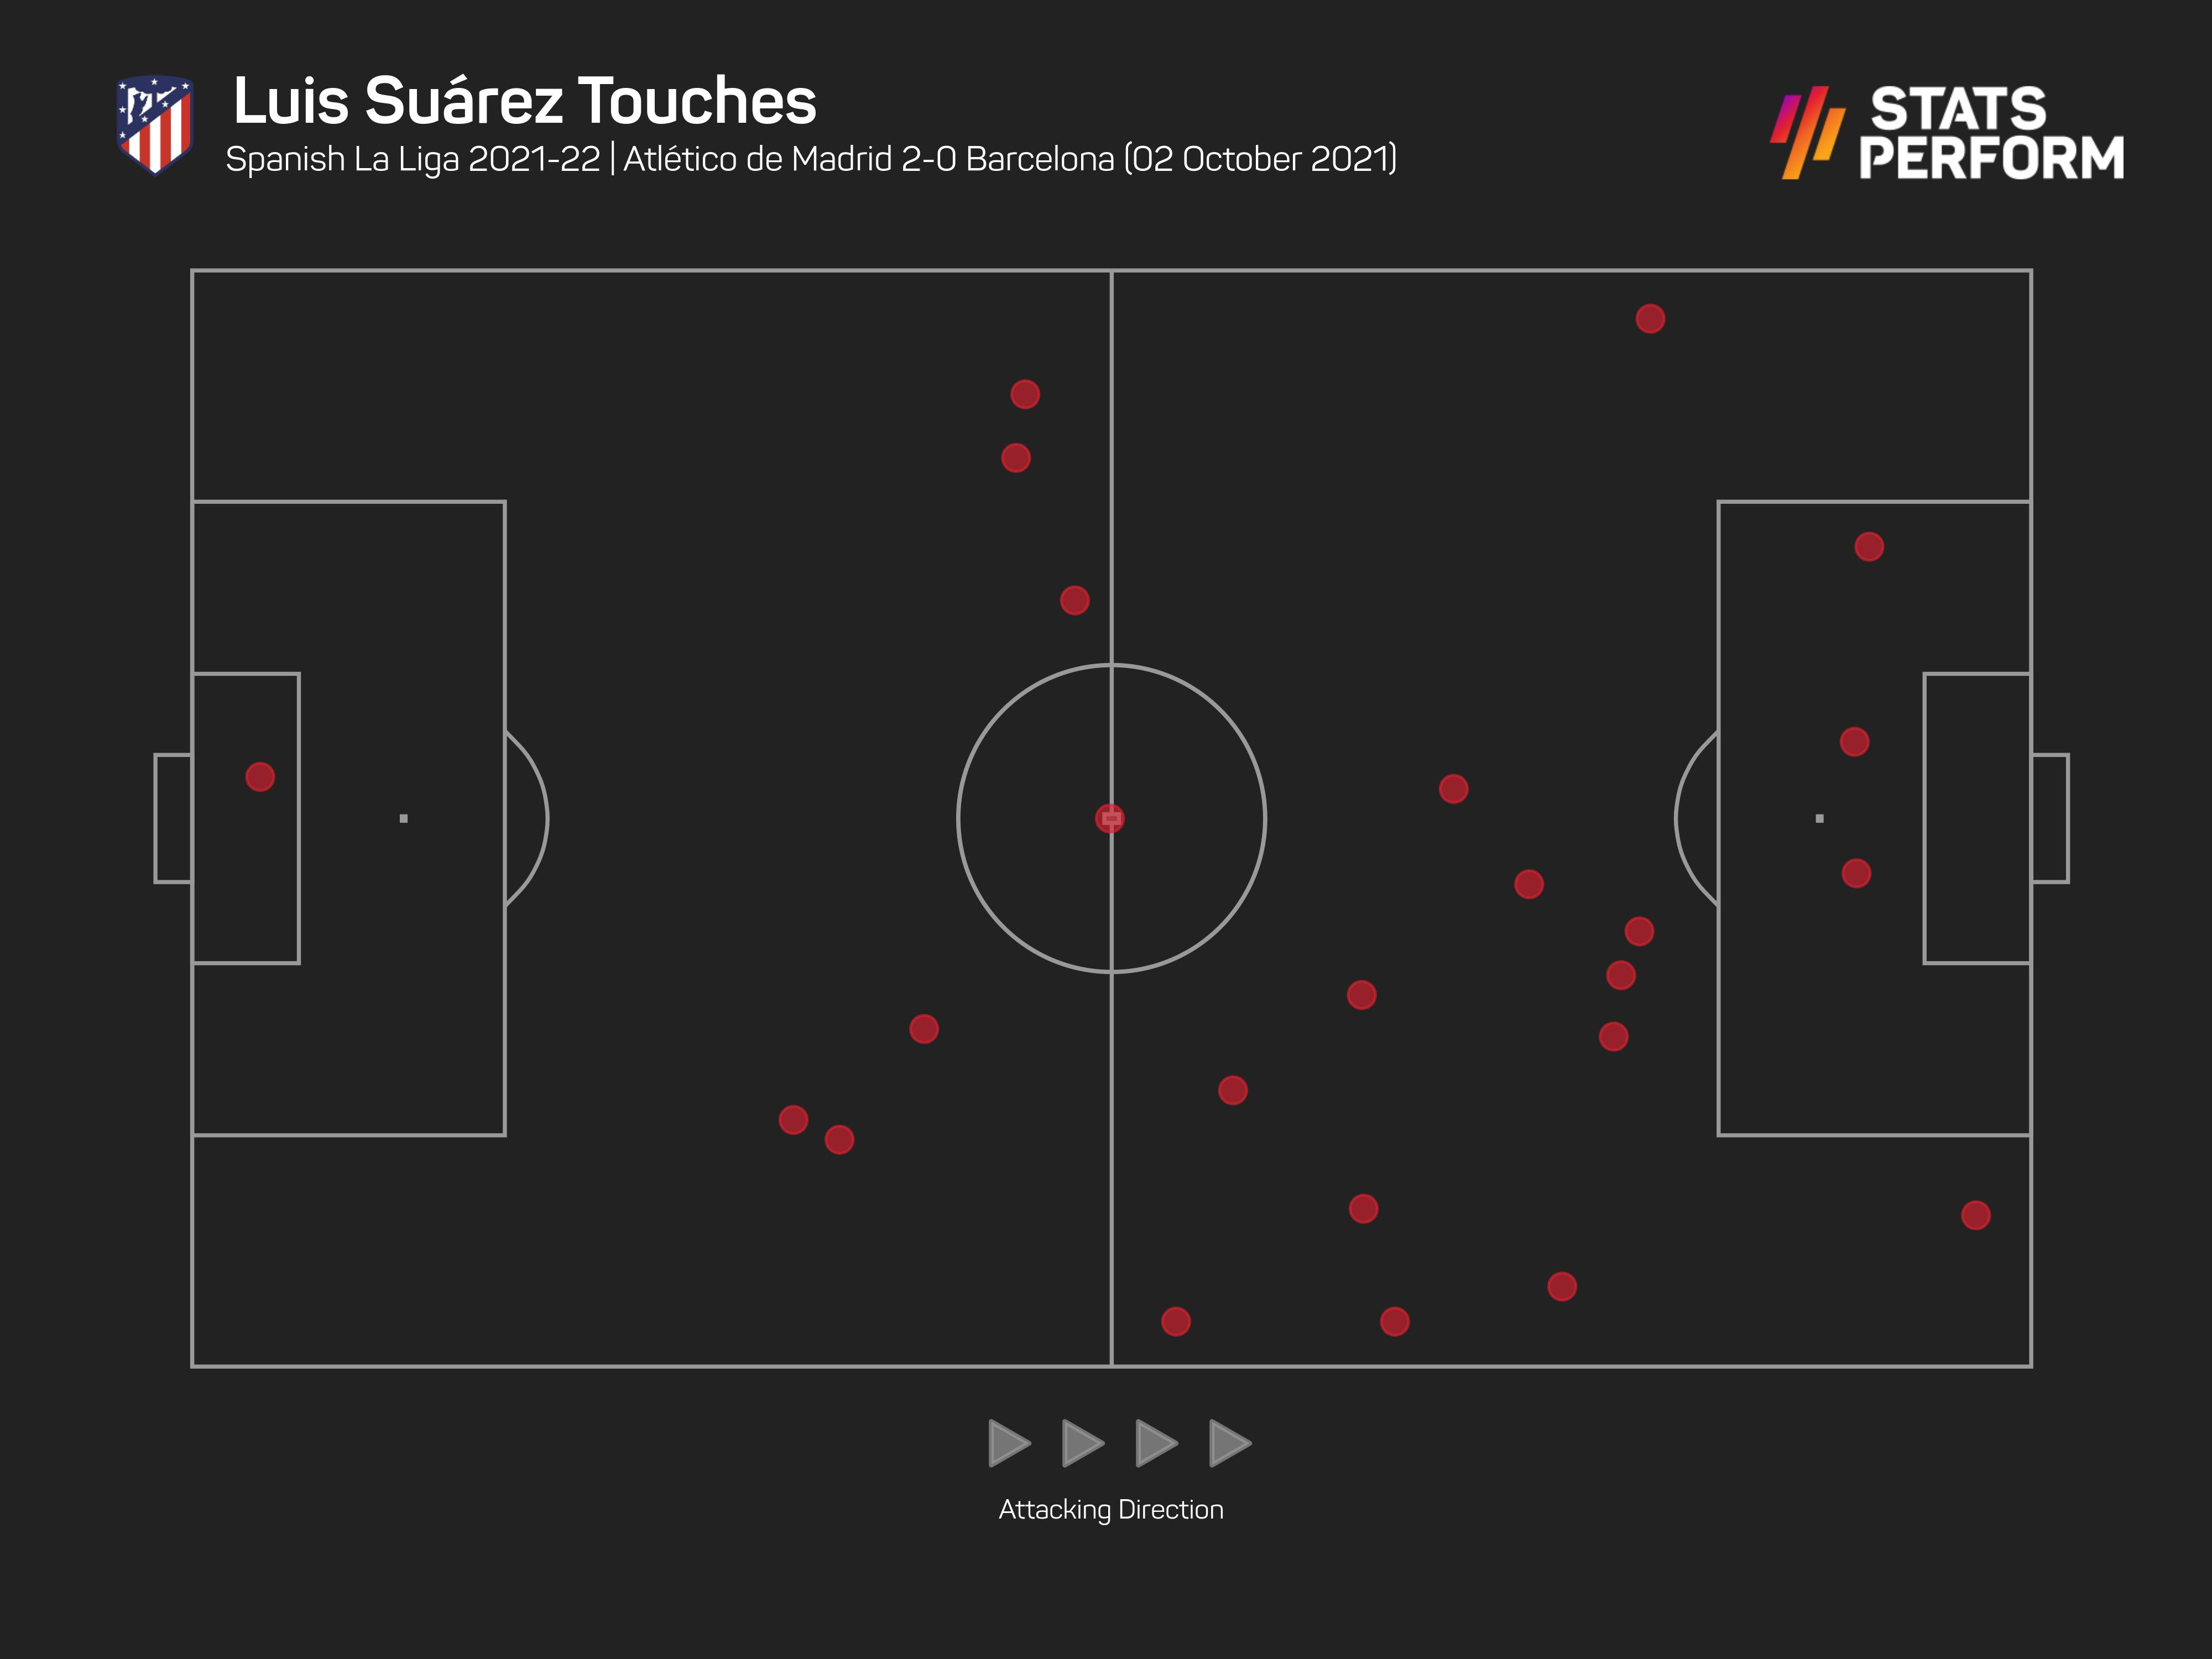 Luis Suarez was influential in Atletico Madrid's win